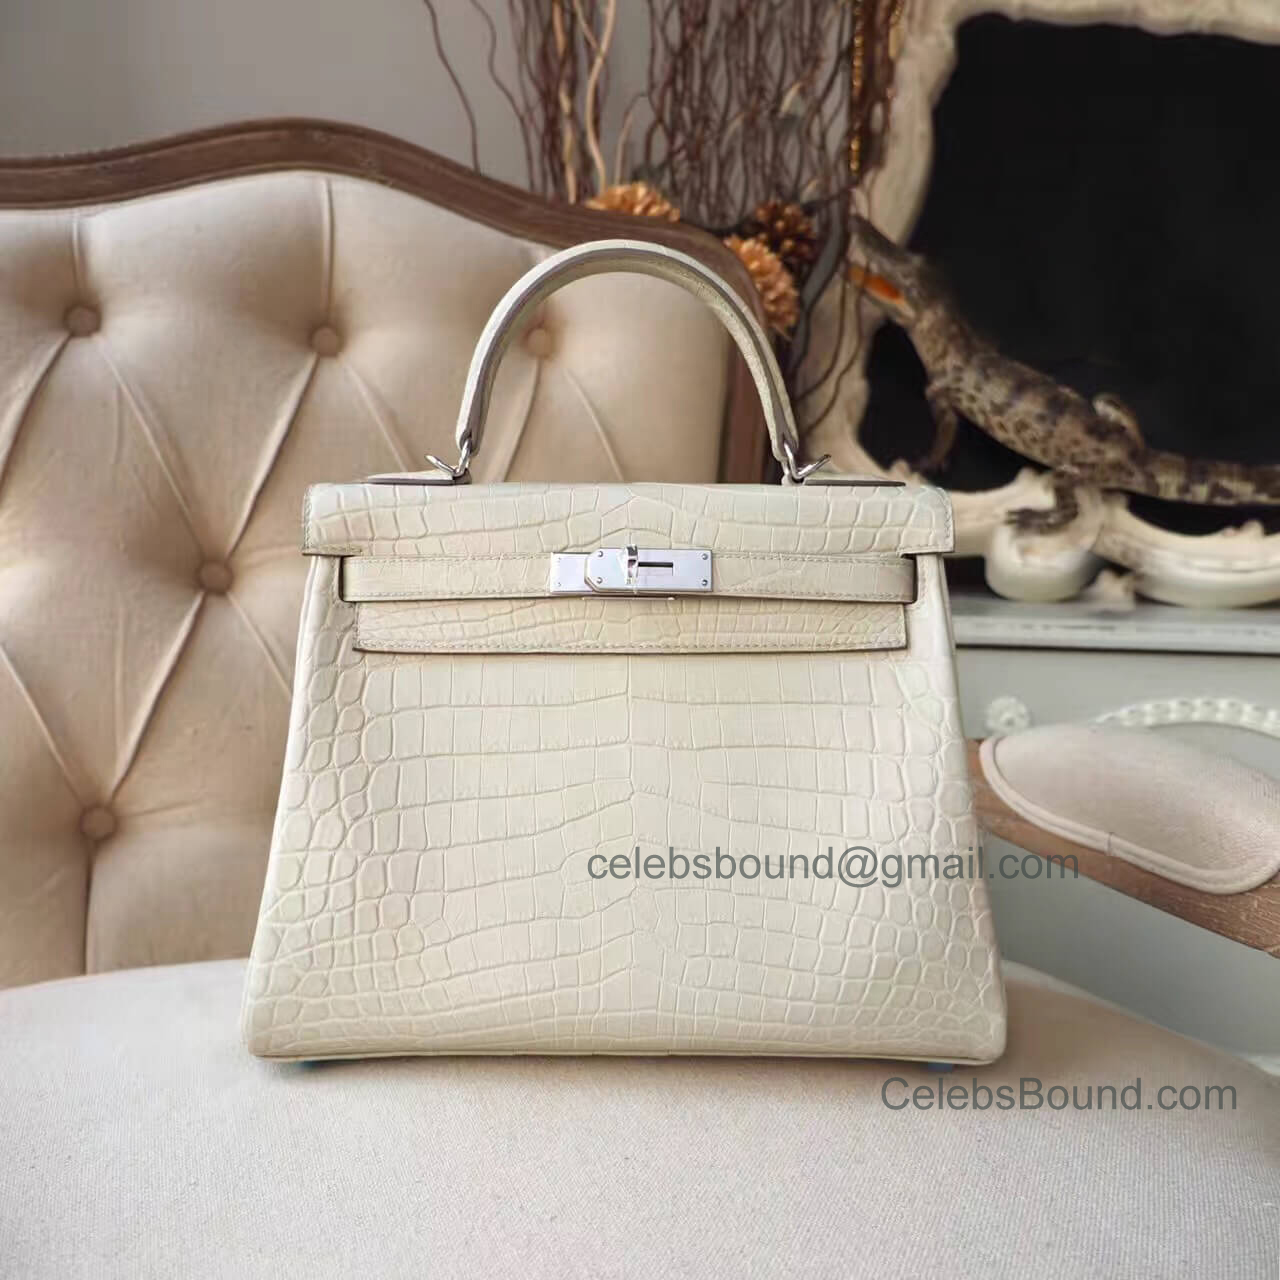 Replica Hermes Kelly 28 Bag in 8L Beton Matte Nile Croc PHW